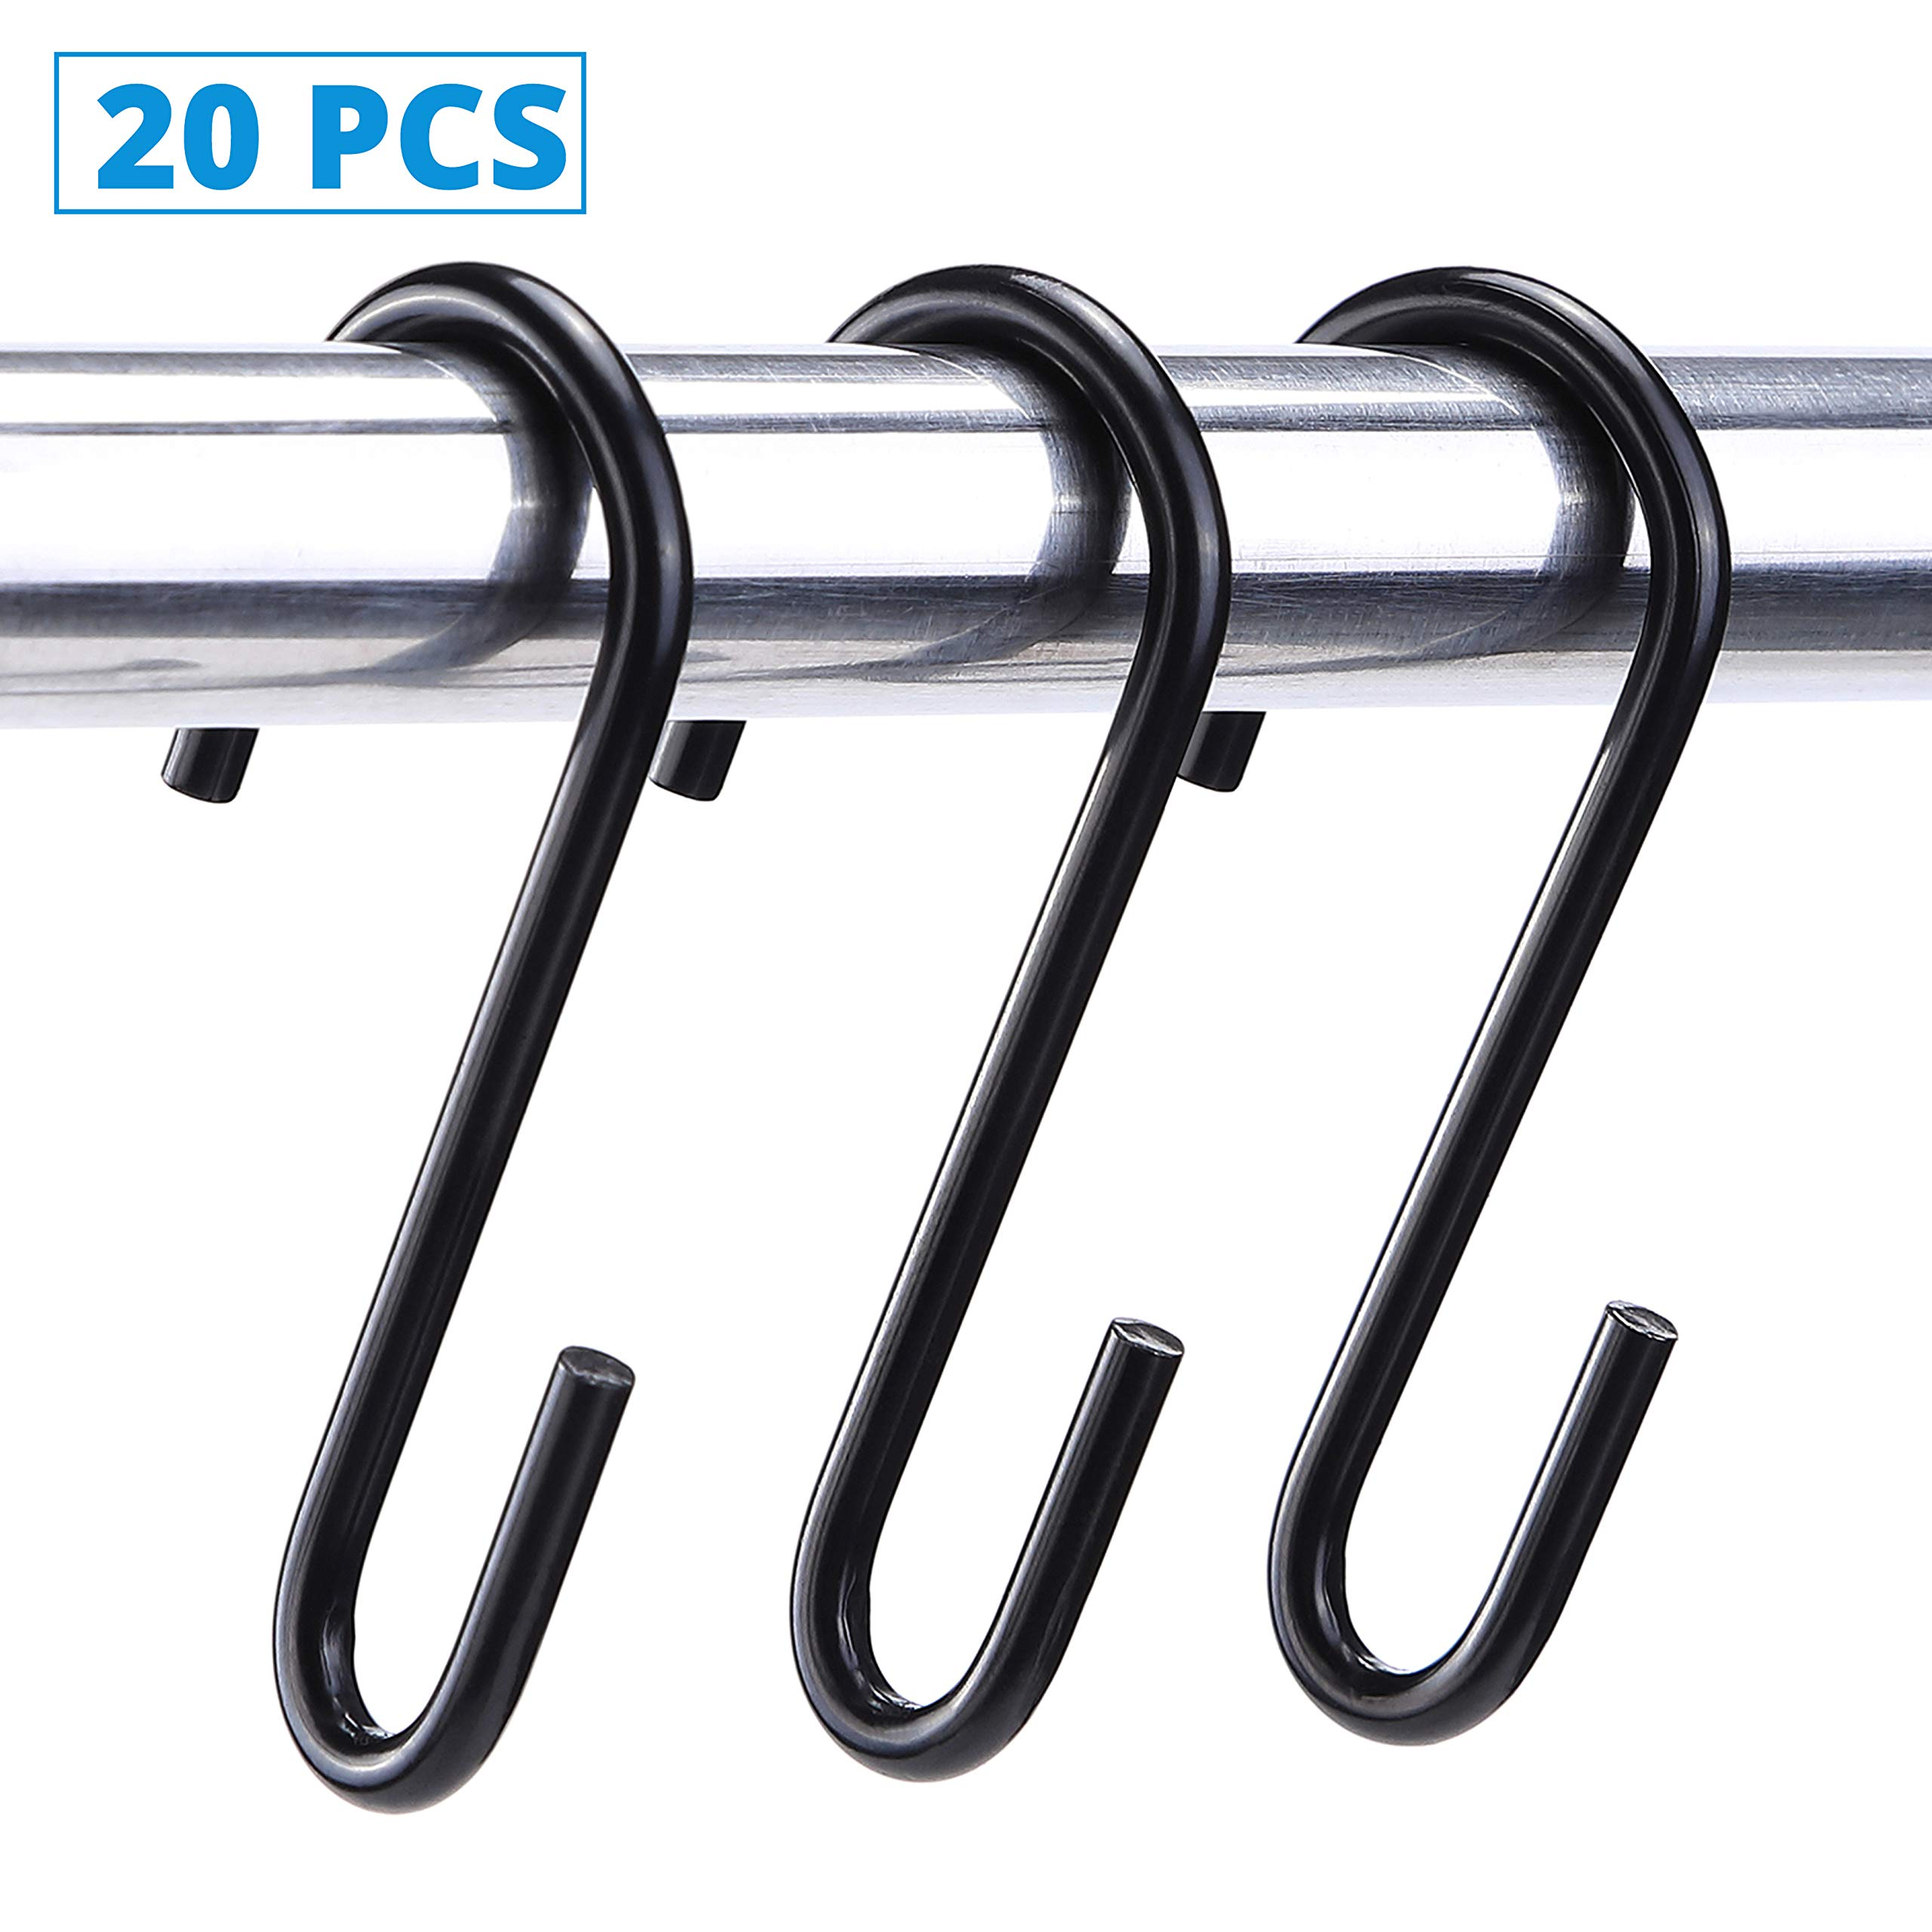 Rivexy S Hooks - Pack of 20 Black Carbon Steel